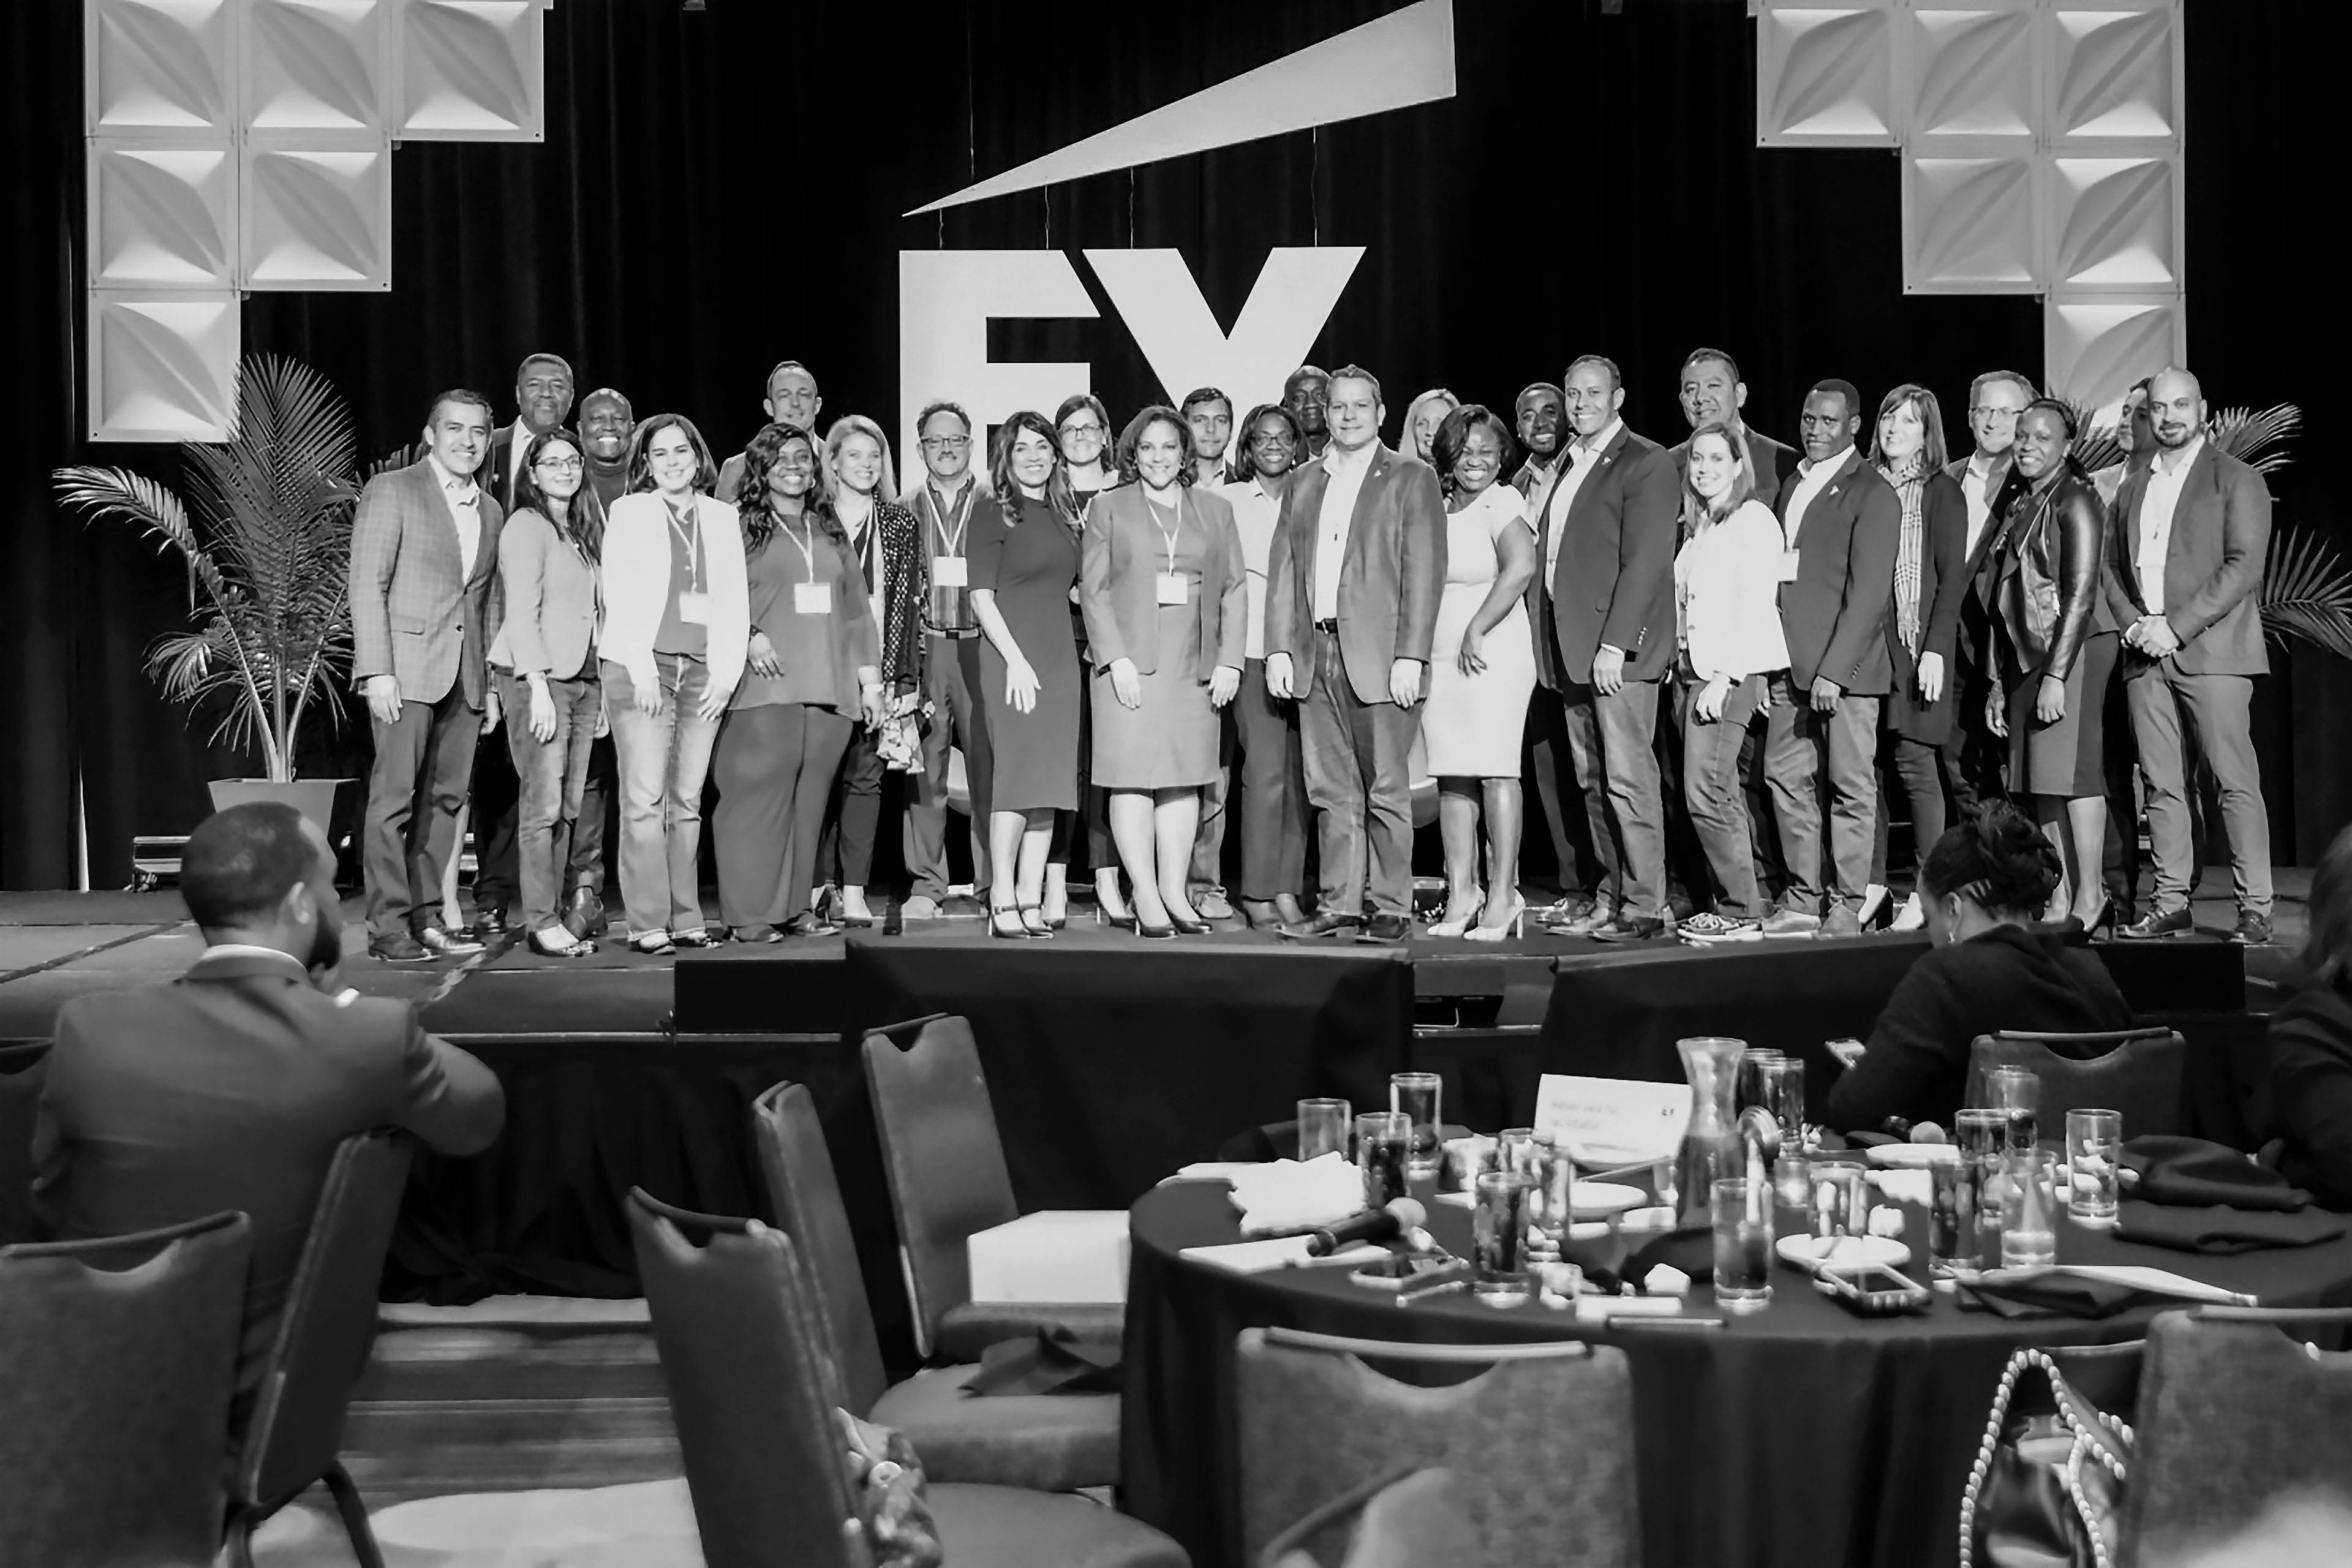 EY - Diverse group standing on stage